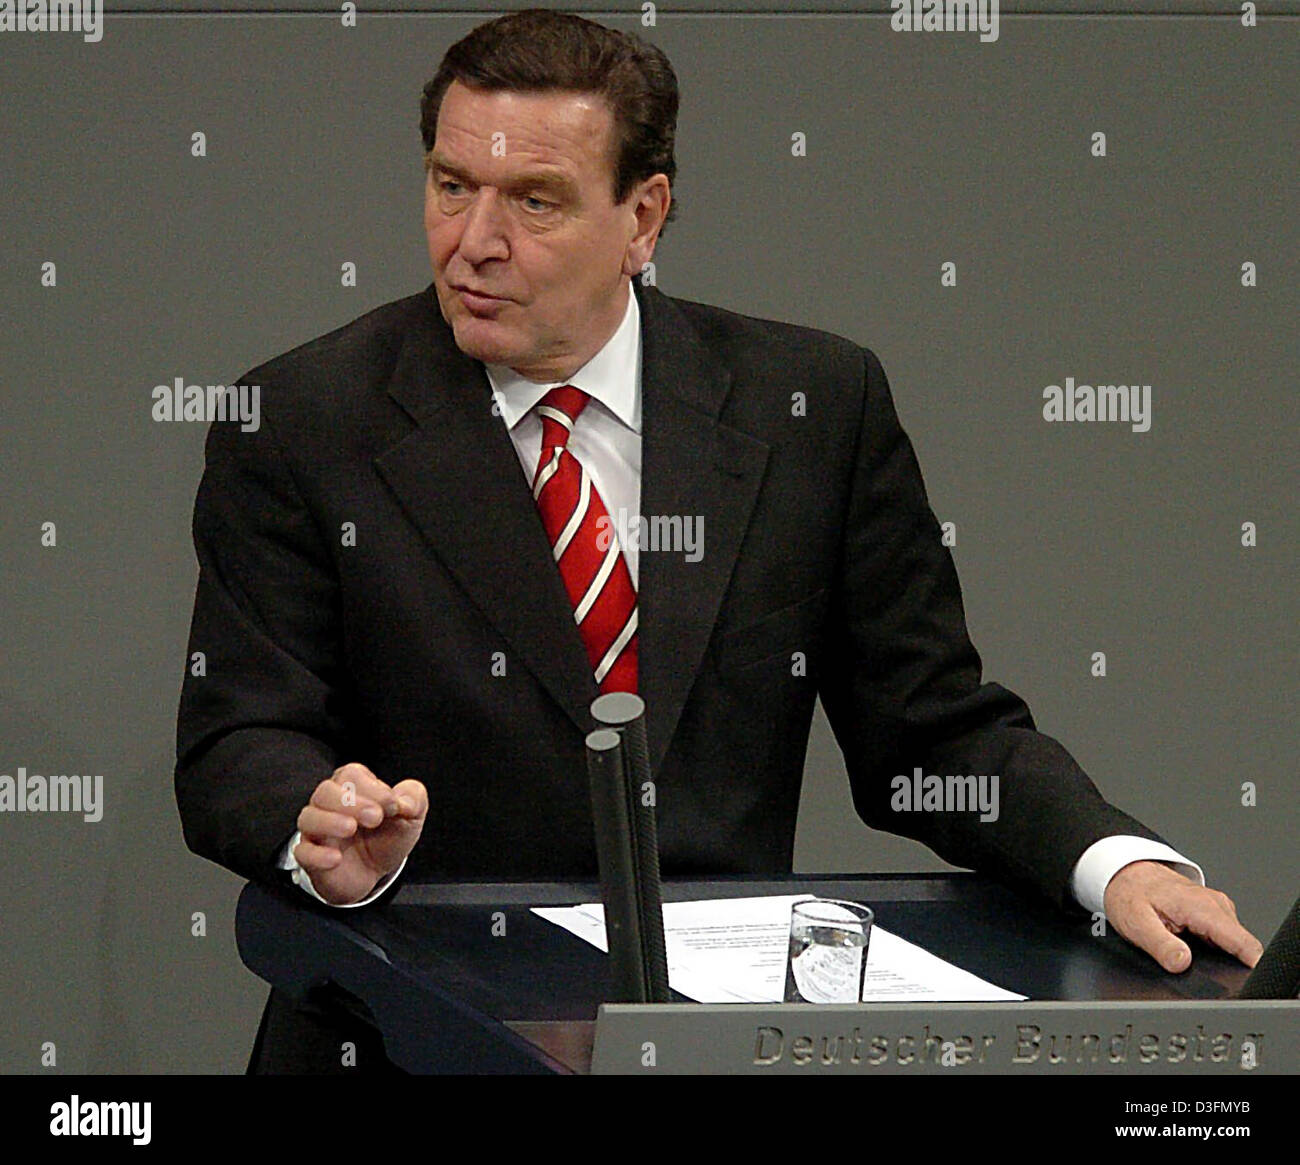 (dpa) - German Chancellor Gerhard Schroeder talks during the Ukraine debate at the Bundestag in Berlin, Germany, - Stock Image